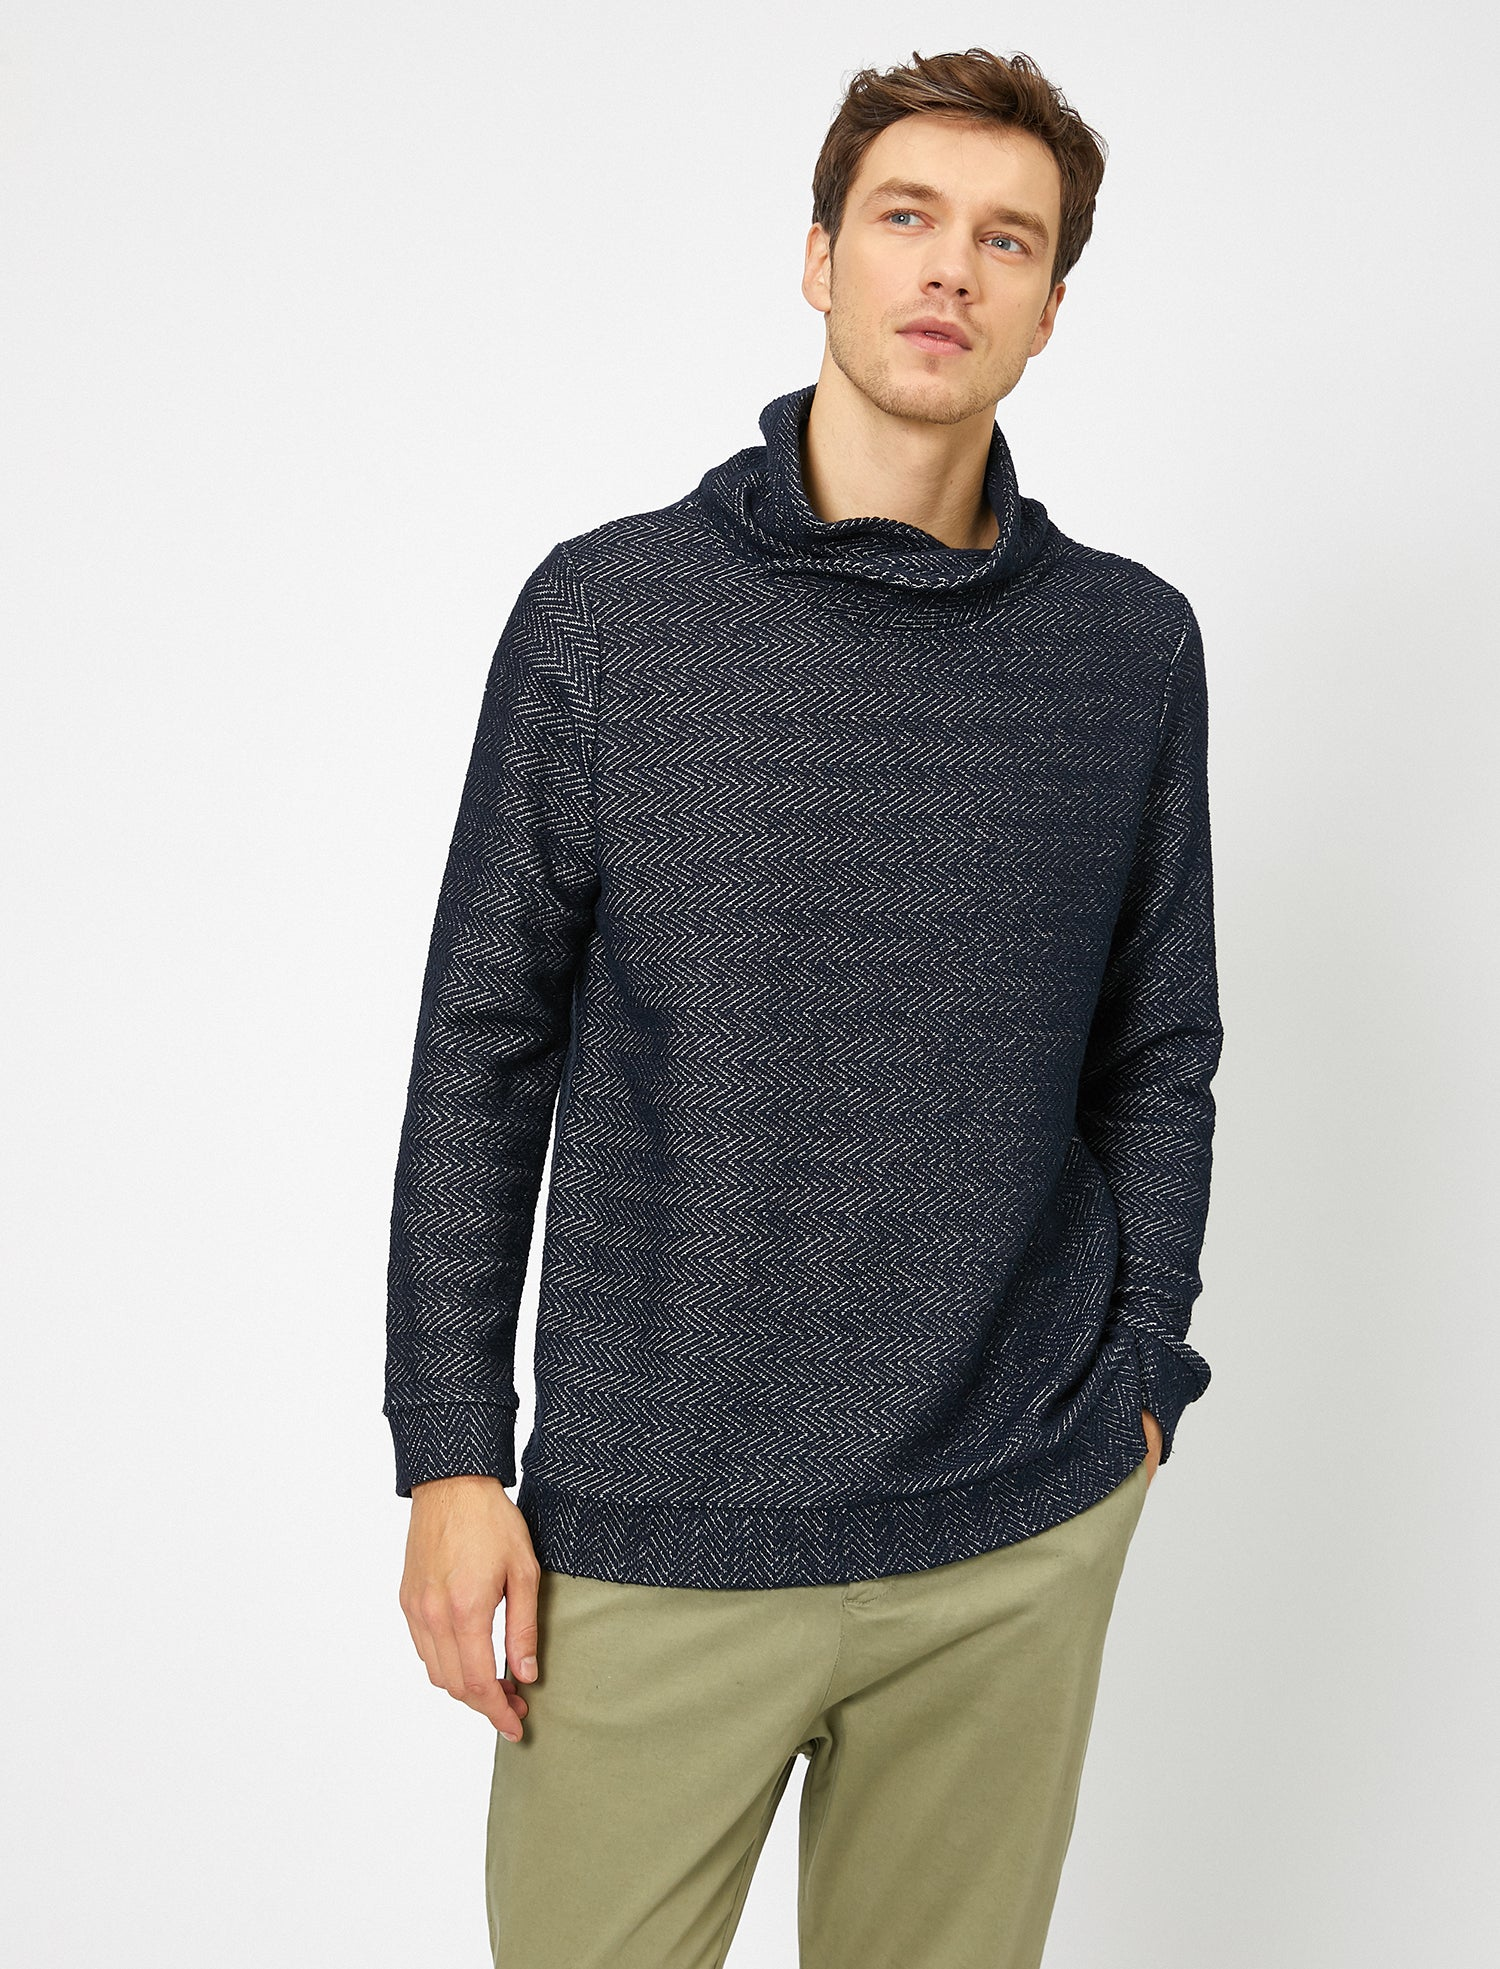 Textured Shawl Collar Sweater in Navy